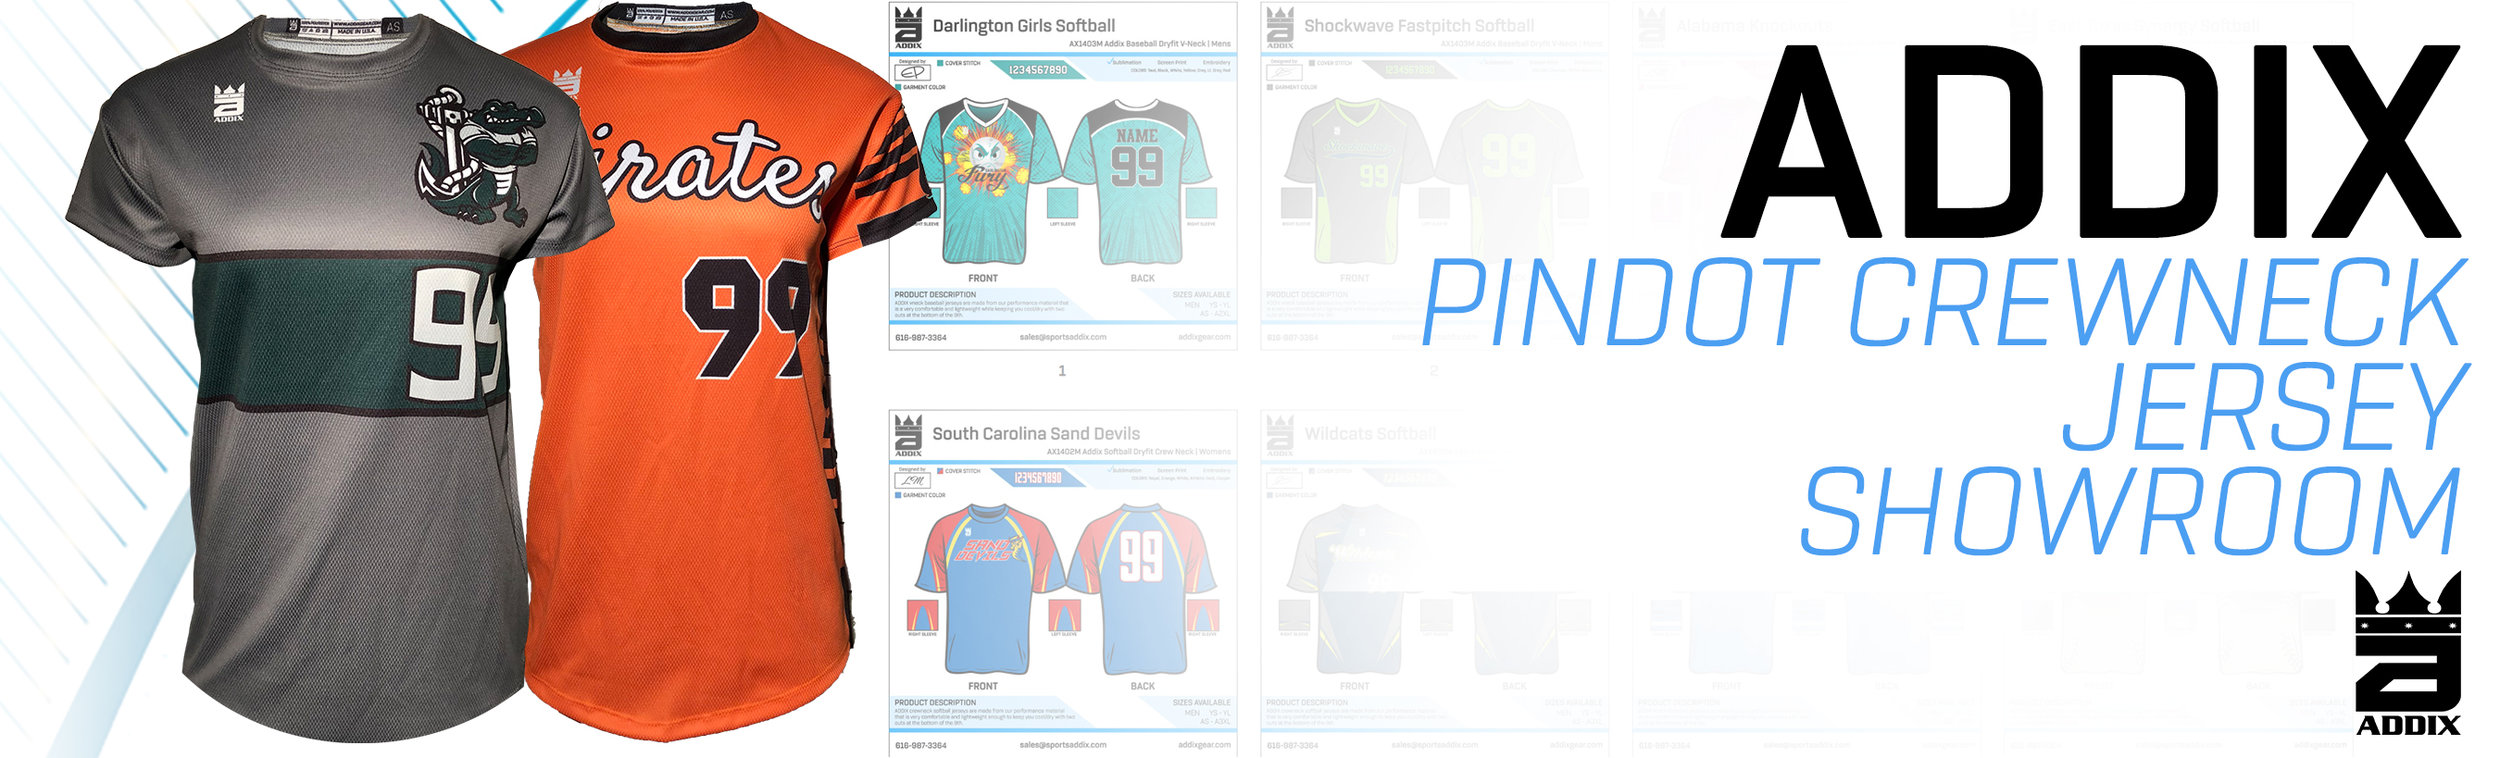 Custom Pindot Softball Jerseys Showroom